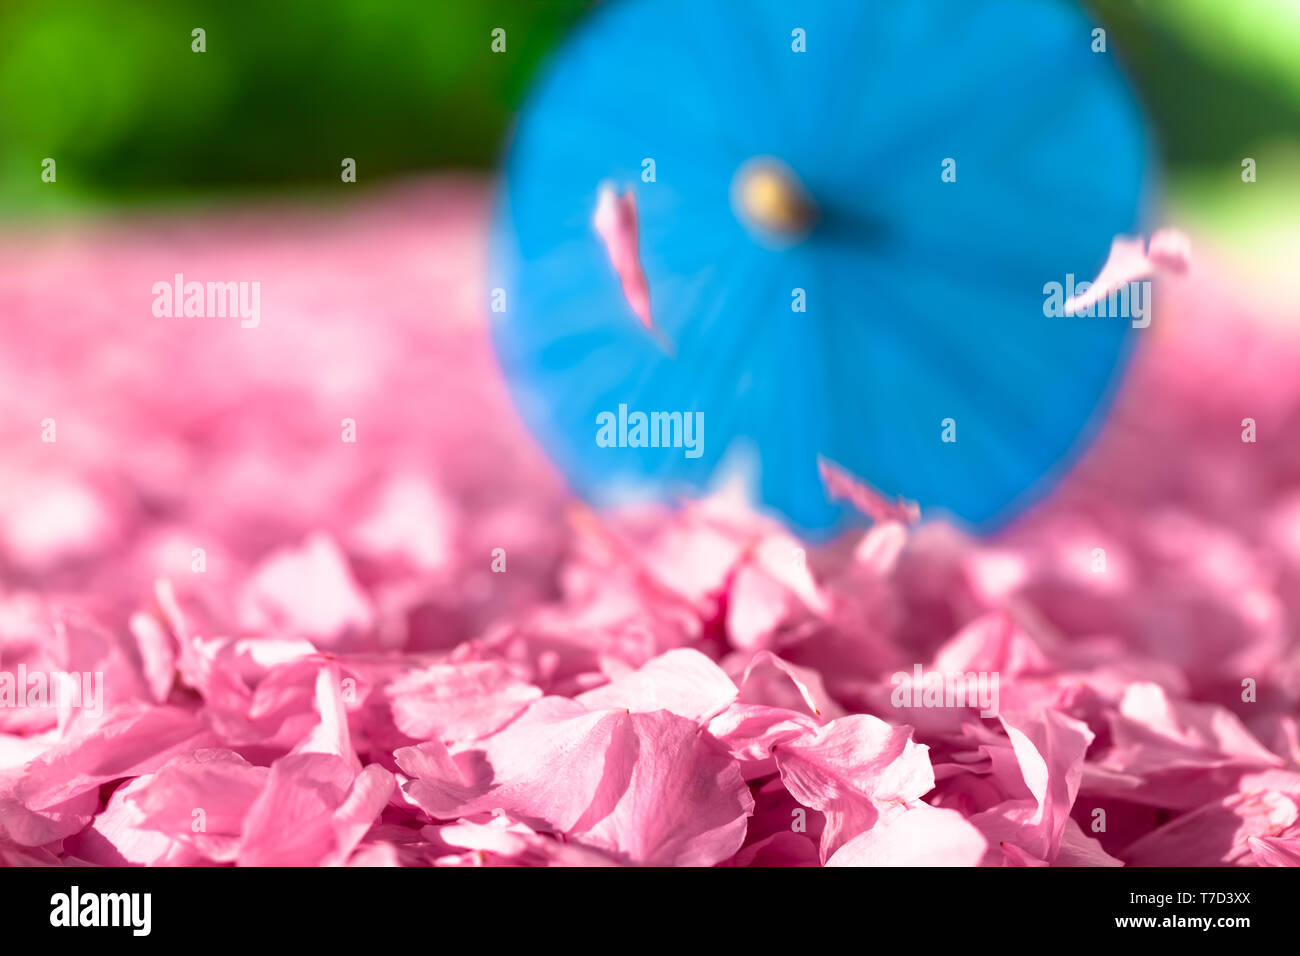 Heap of cherry blossoms and falling petals at asian park background with blue parasol (copy space) - Stock Image